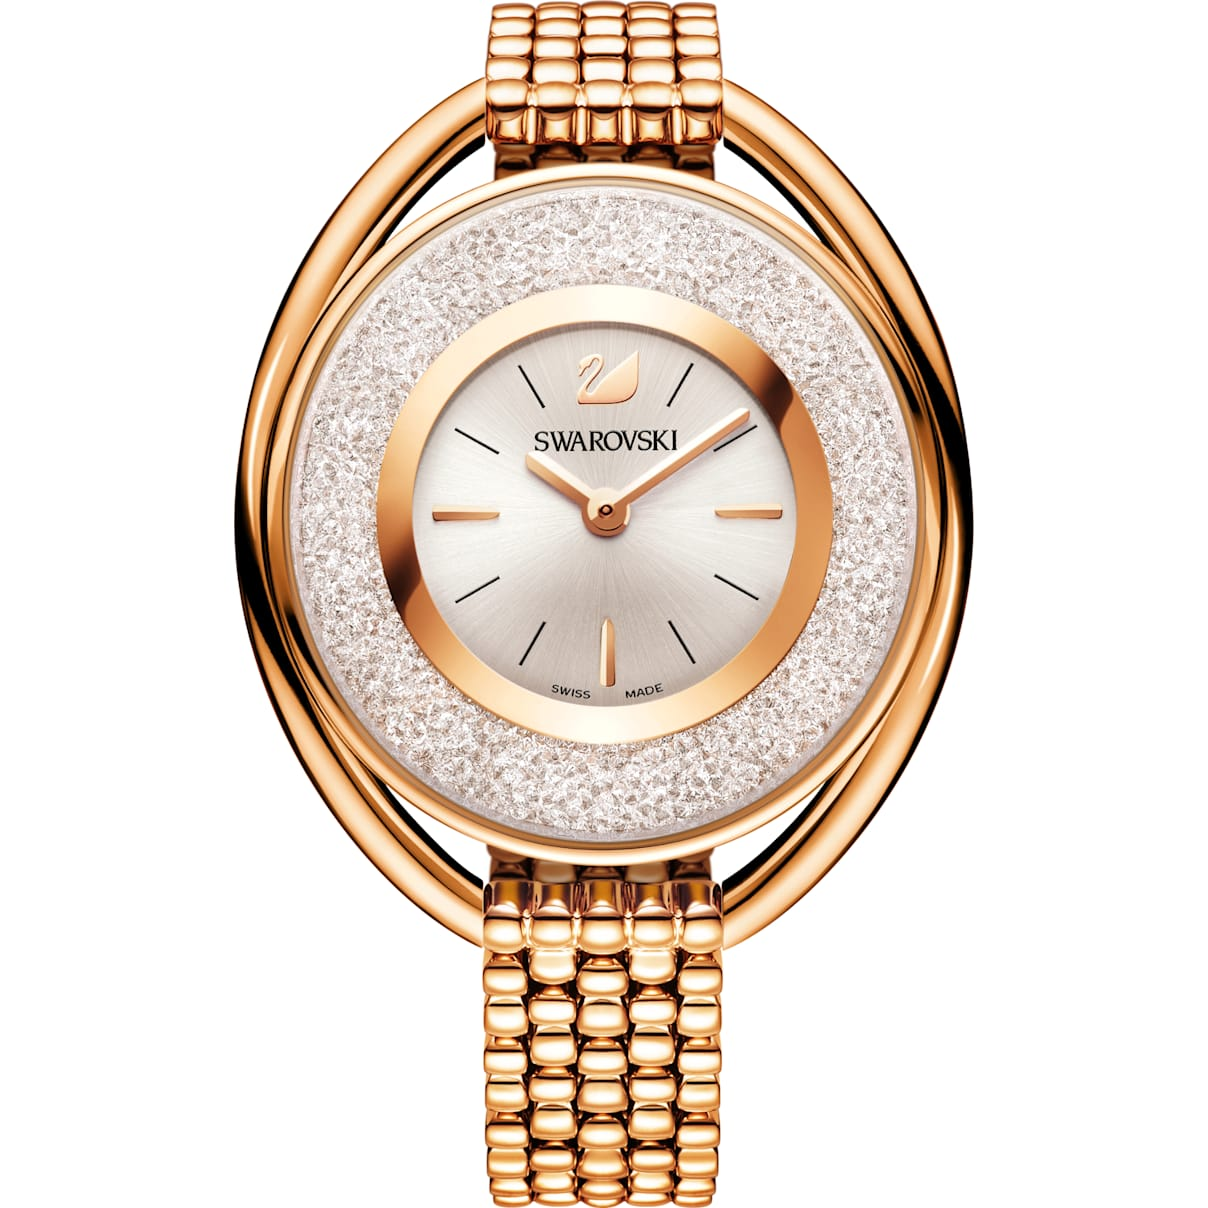 Swarovski Crystalline Oval Watch, Metal bracelet, White, Rose-gold tone PVD